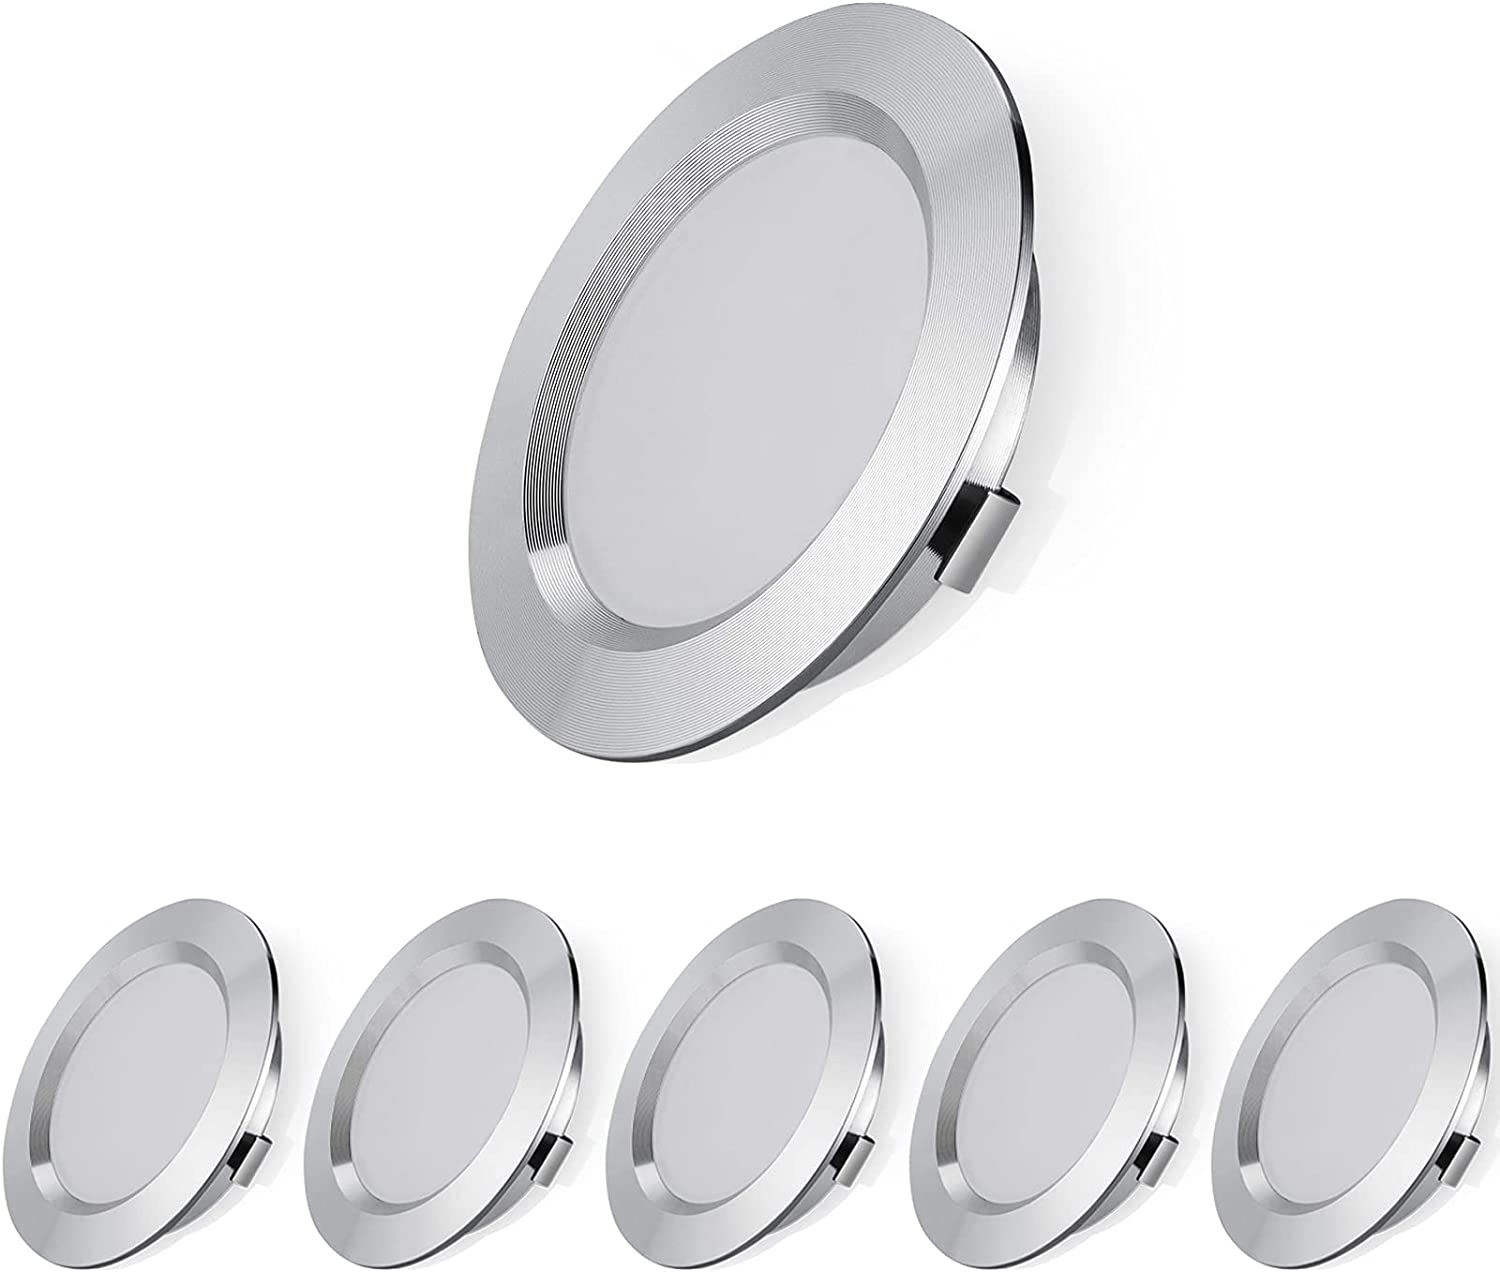 Yarkove 12 Volt LED Lights for Slim Recess Dimmable Time sale Interior RV Superior